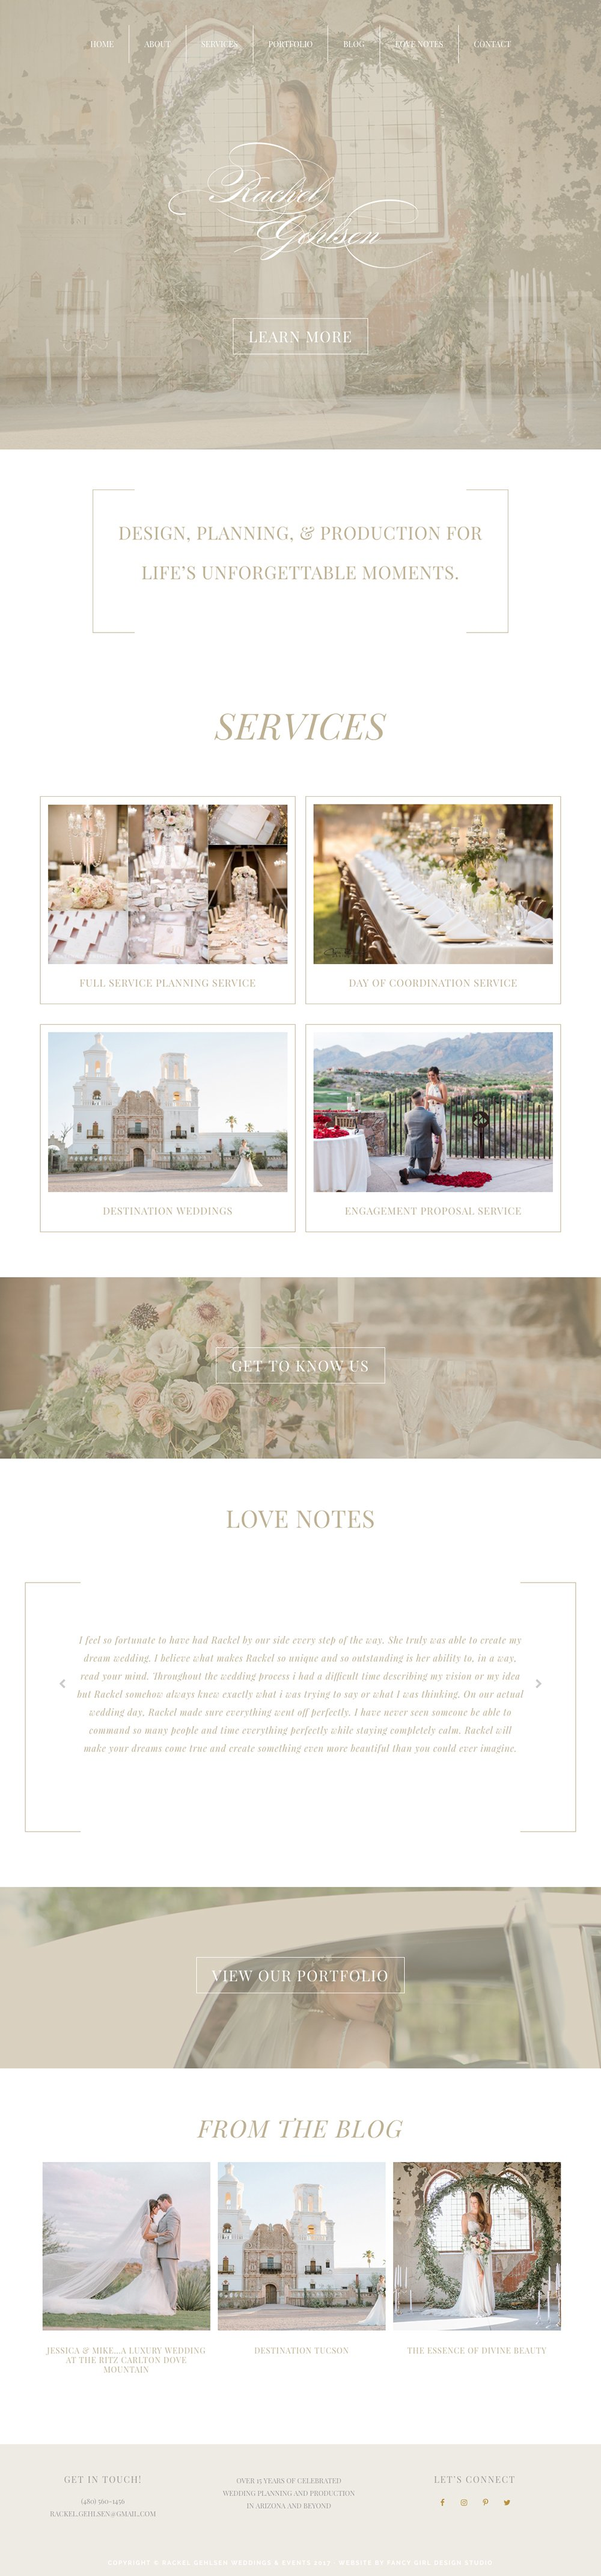 Rackel Gehlsen Weddings Homepage Design by Fancy Girl Design Studio